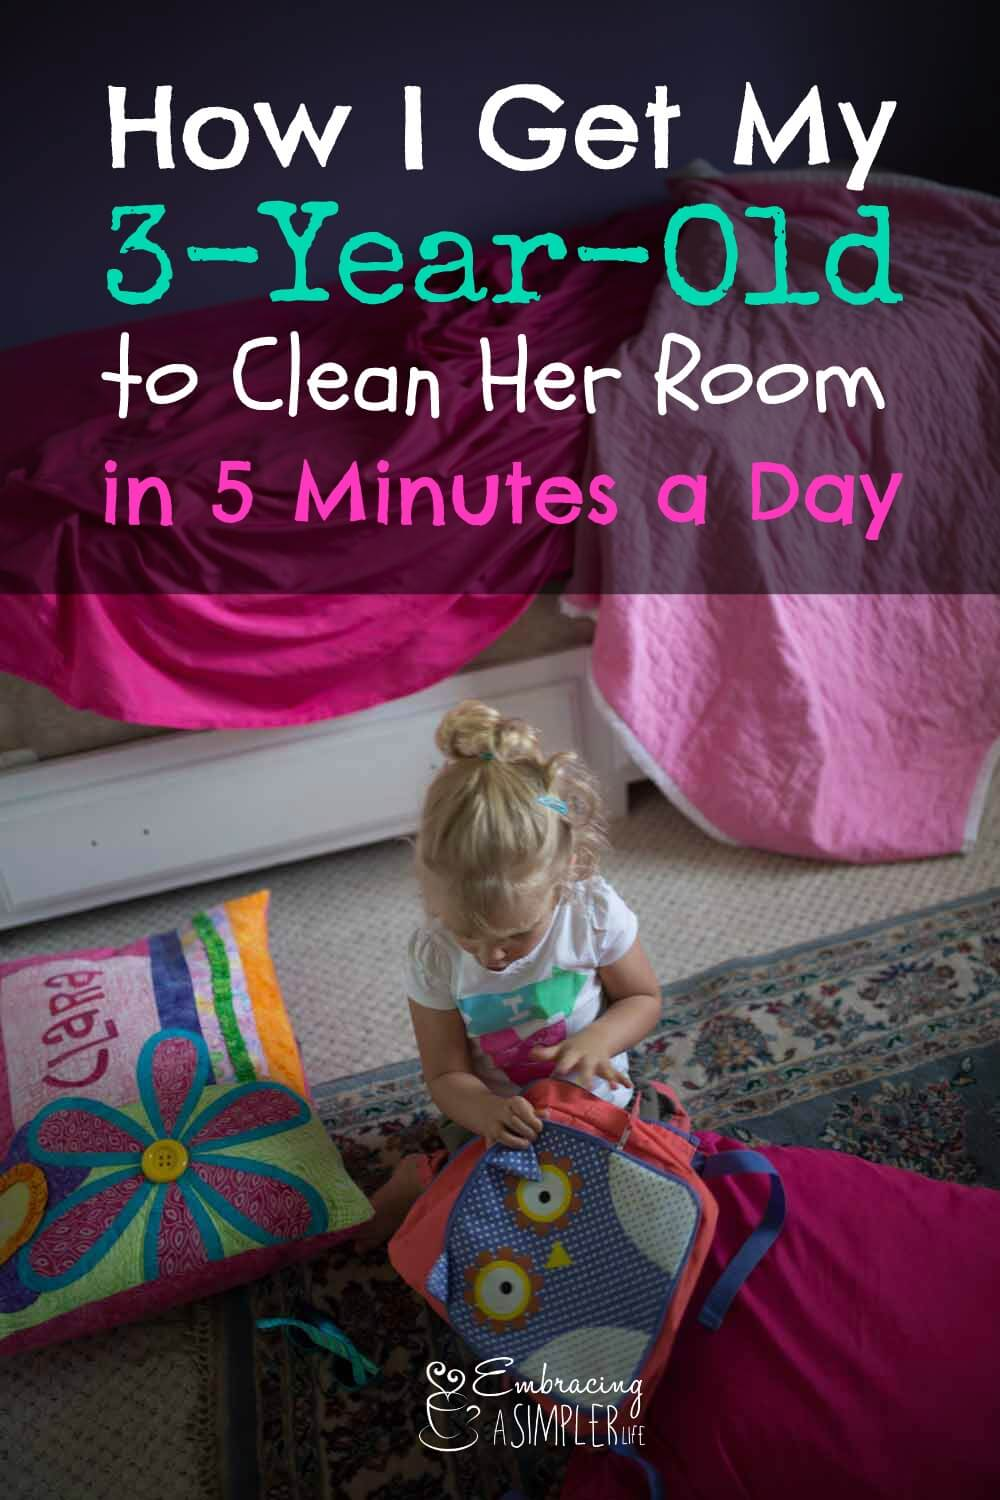 get a 3-year-old to clean her room